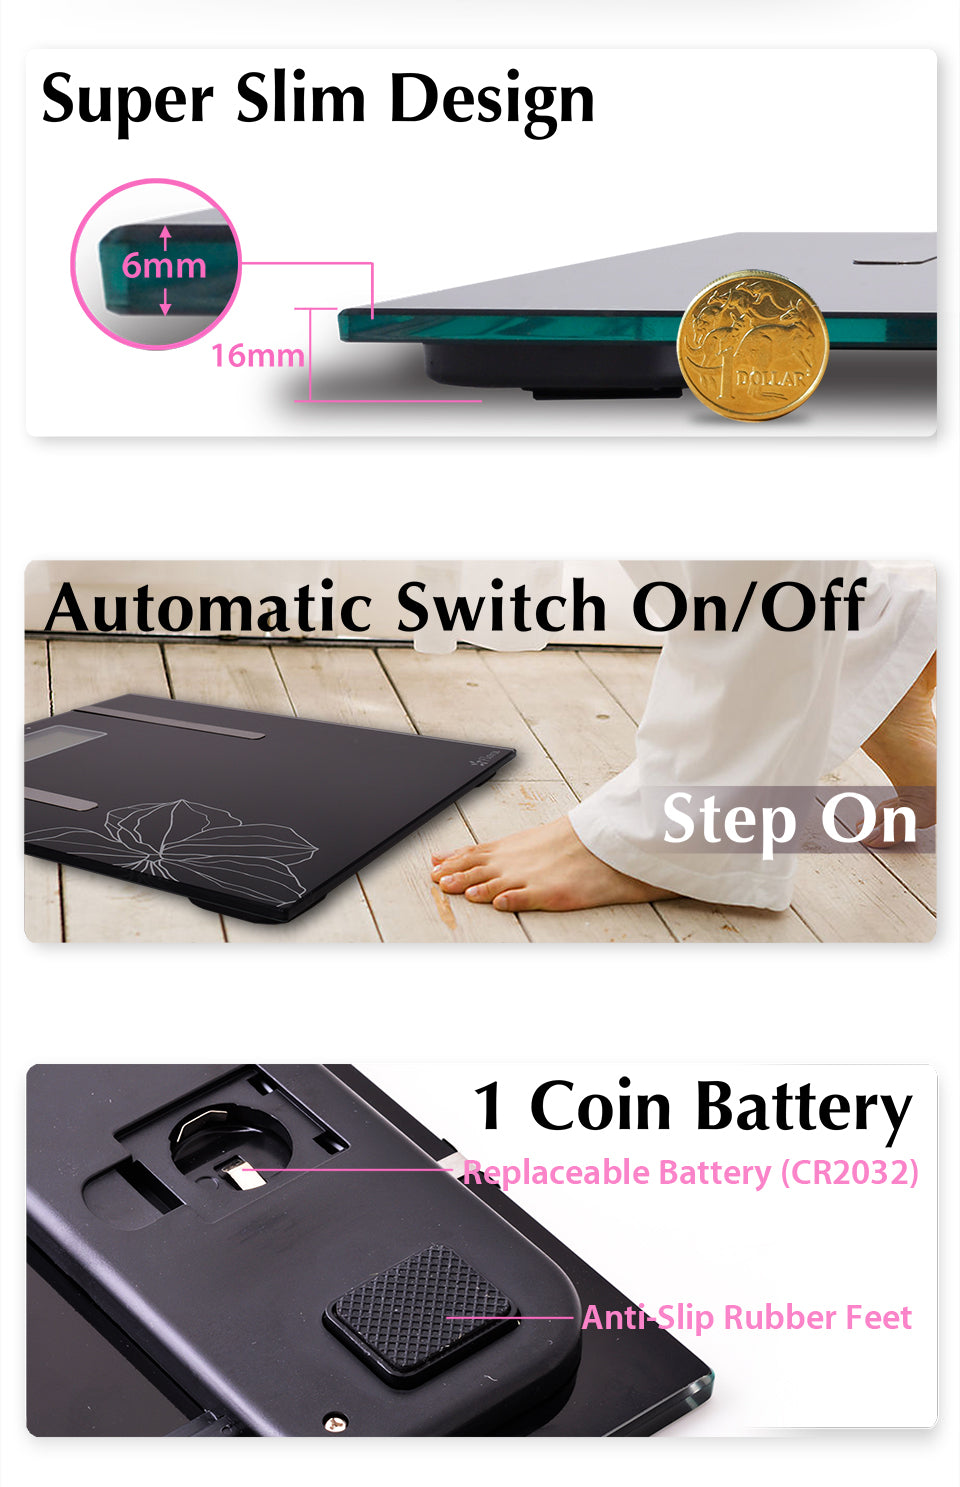 Flora Body Scale Water & Fat Analysis Super Slim Design Automatic Switch On/Off Step On 1 Coin Battery Replaceable Battery (CR2032) Anti-Slip Rubber Feet